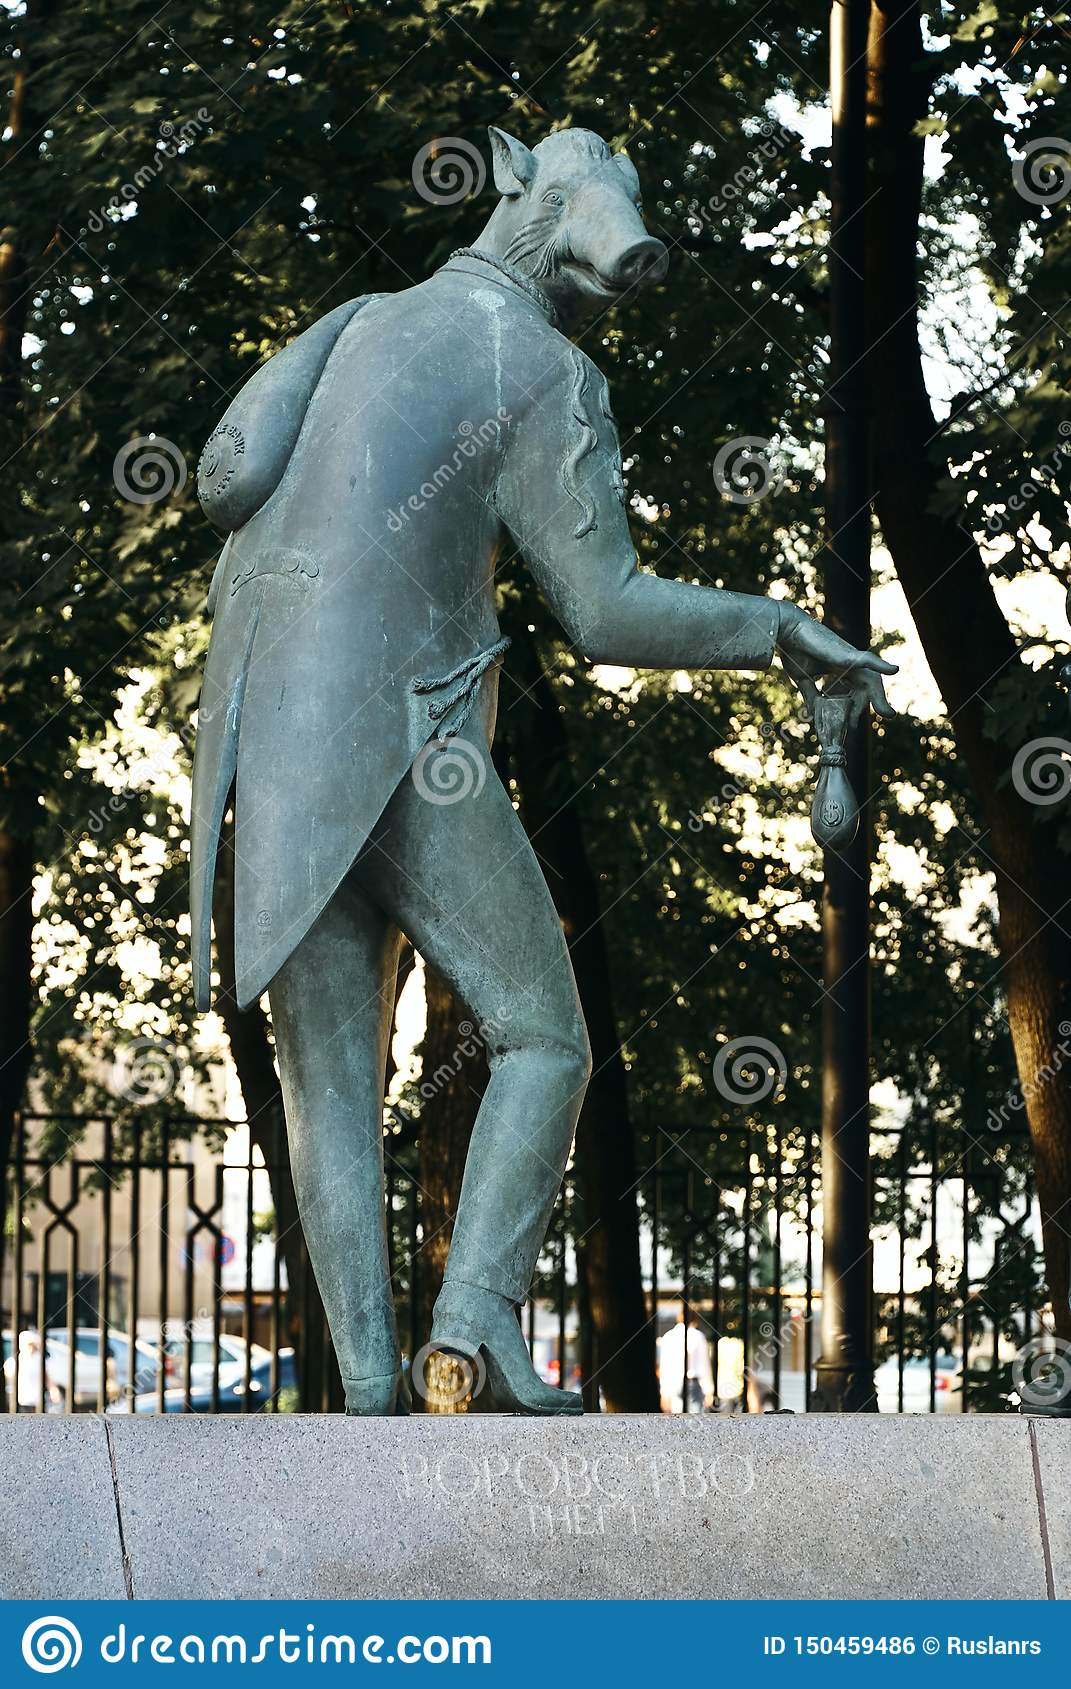 Moscow, Russia - July 24, 2008: Children Are the Victims of Adult Vices is a group of bronze sculptures created by Russian artist